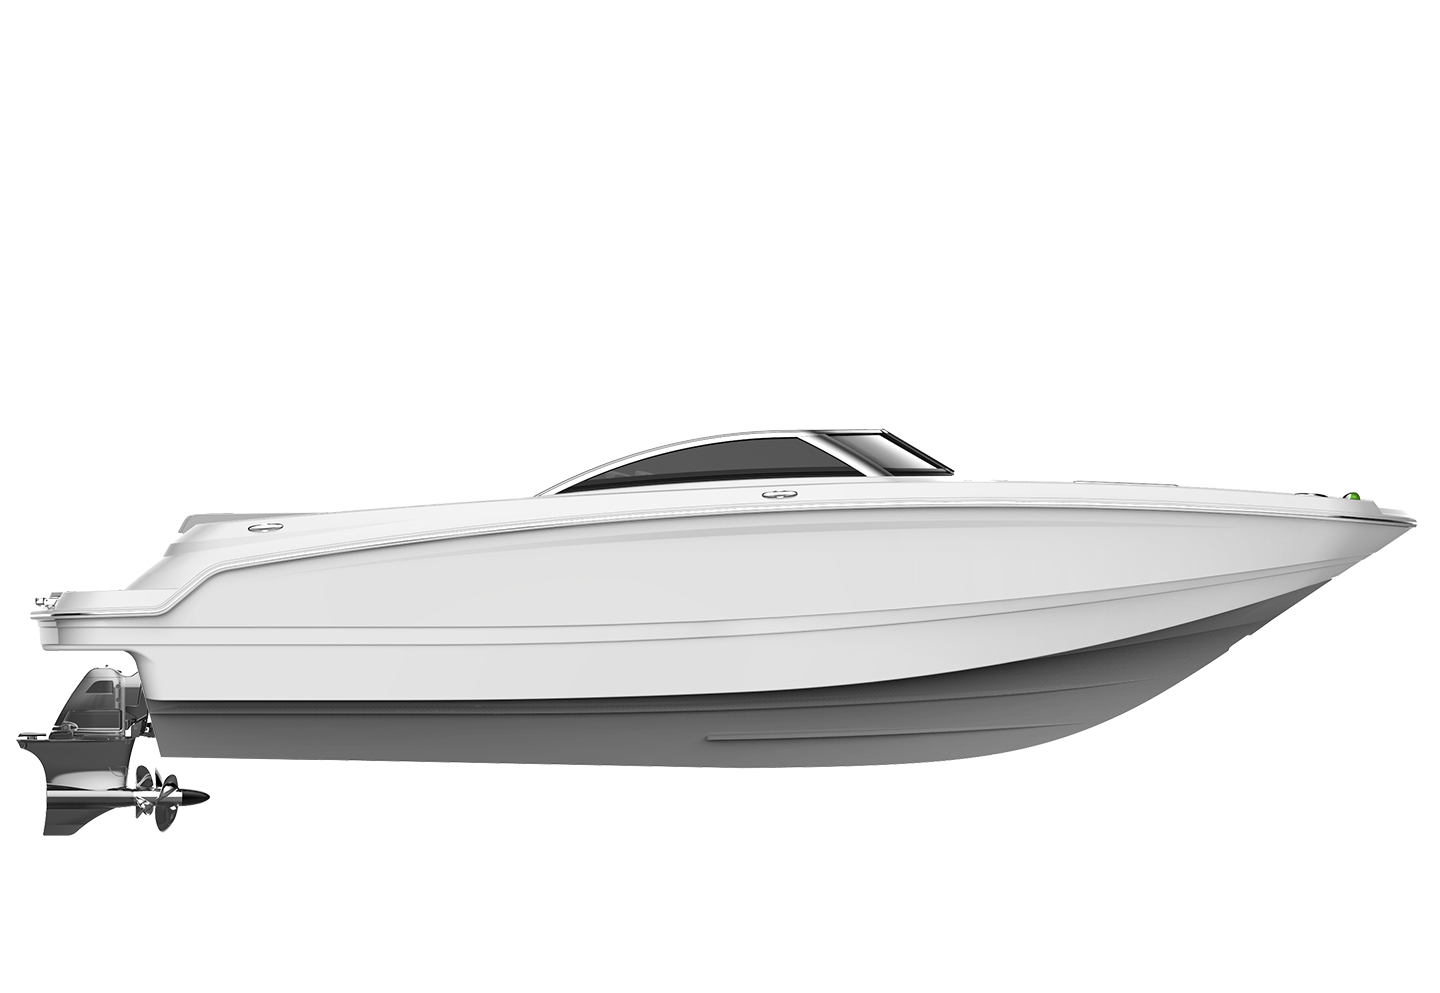 speed boat png transparent speed boat images #18481